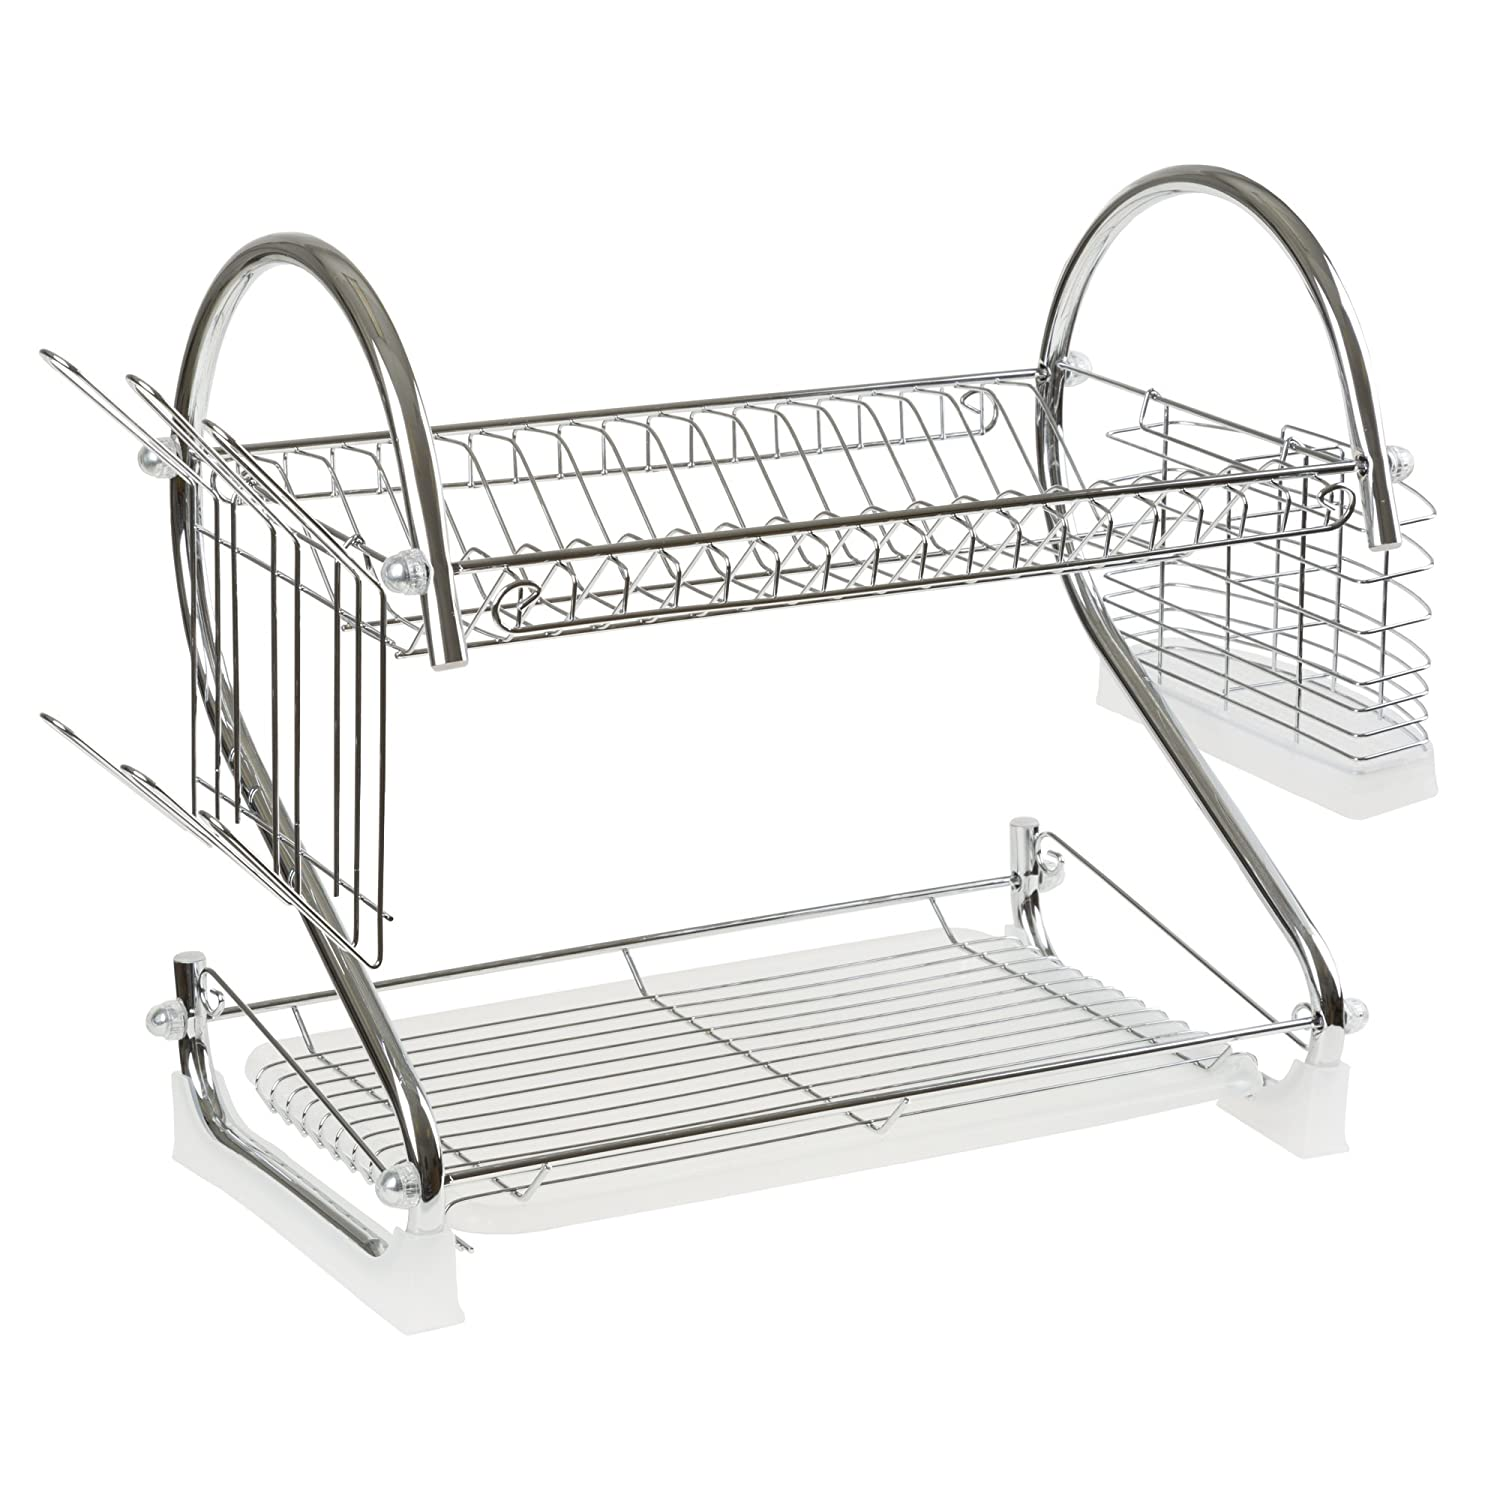 Chrome Dish Drying Rack - 2 Tiered with Cup and Utensil Holders by Chef Buddy 82-2002